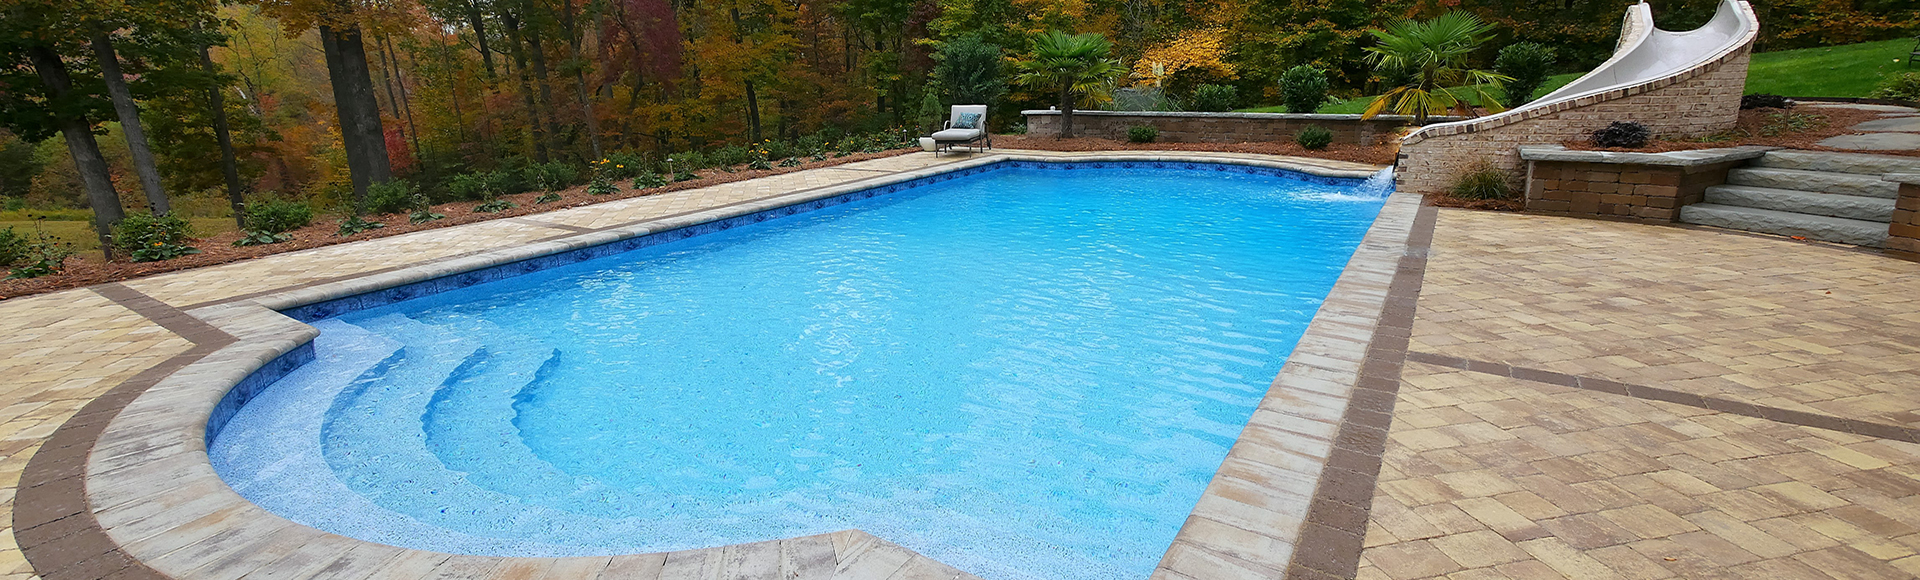 2017 Winning pool design by Guilford Pools